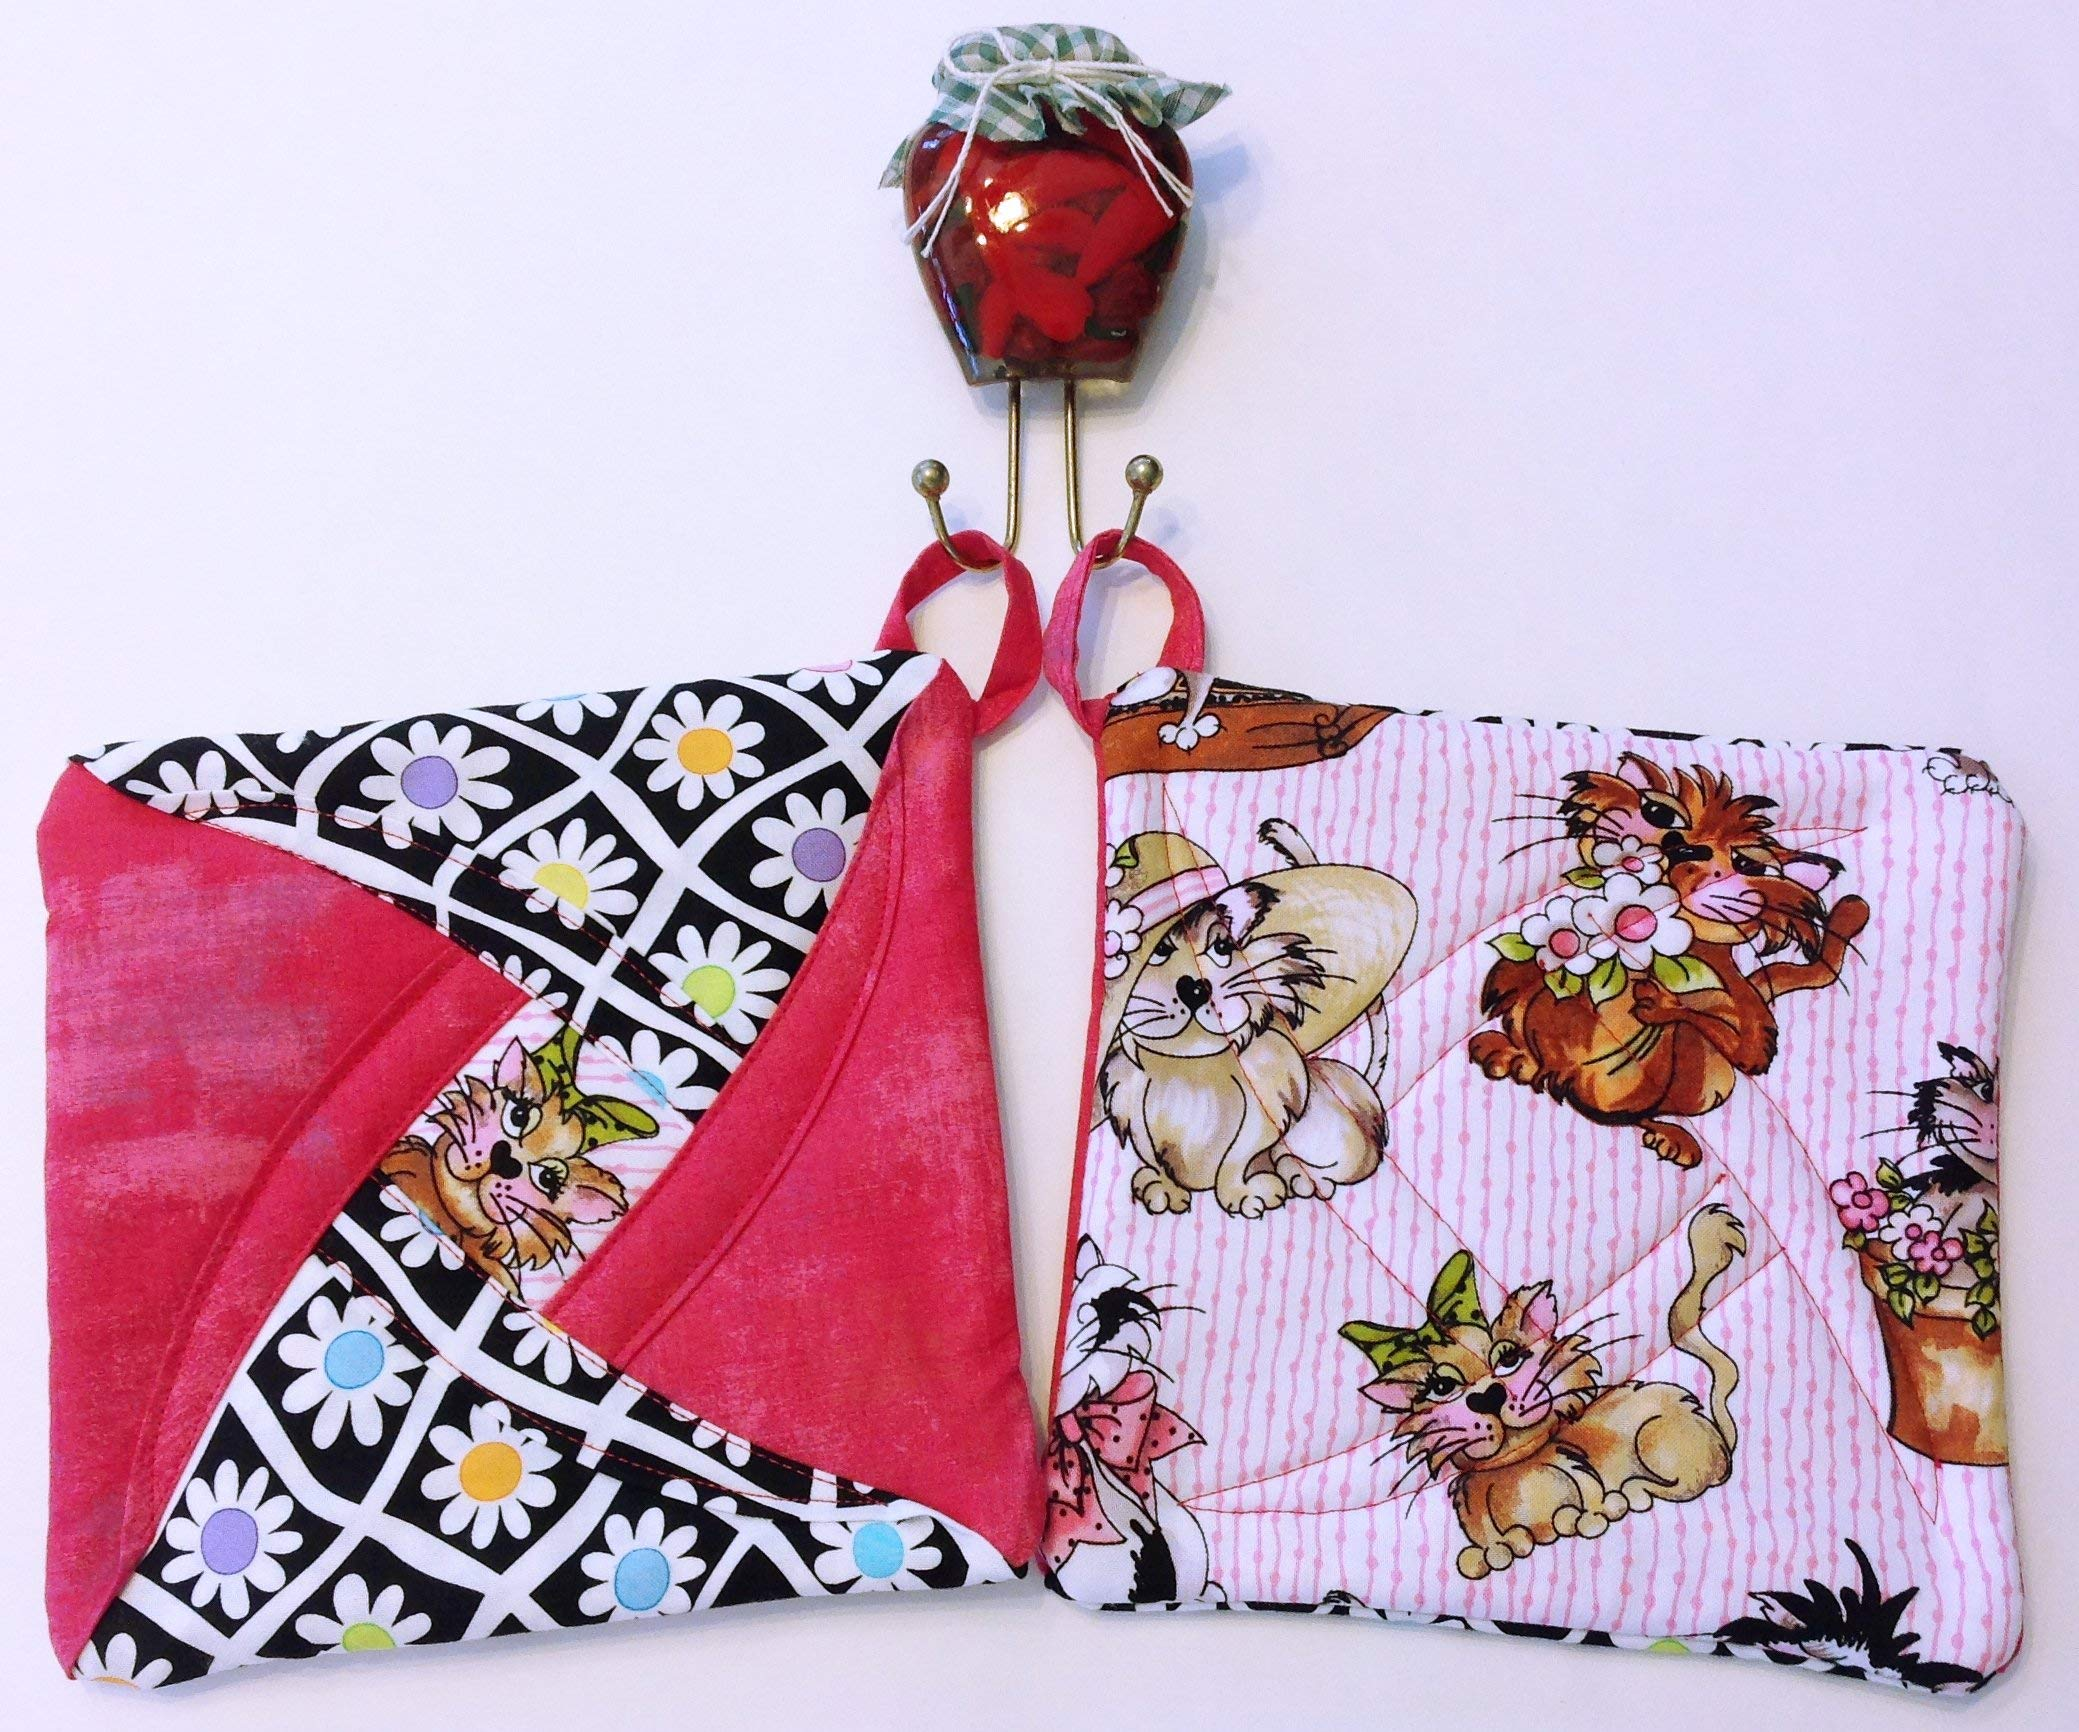 Handmade Reversible Quilted Potholders | Heat Resistant | Kitten Design | Set includes 2 potholders by Oh So Chic Boutique (Image #4)